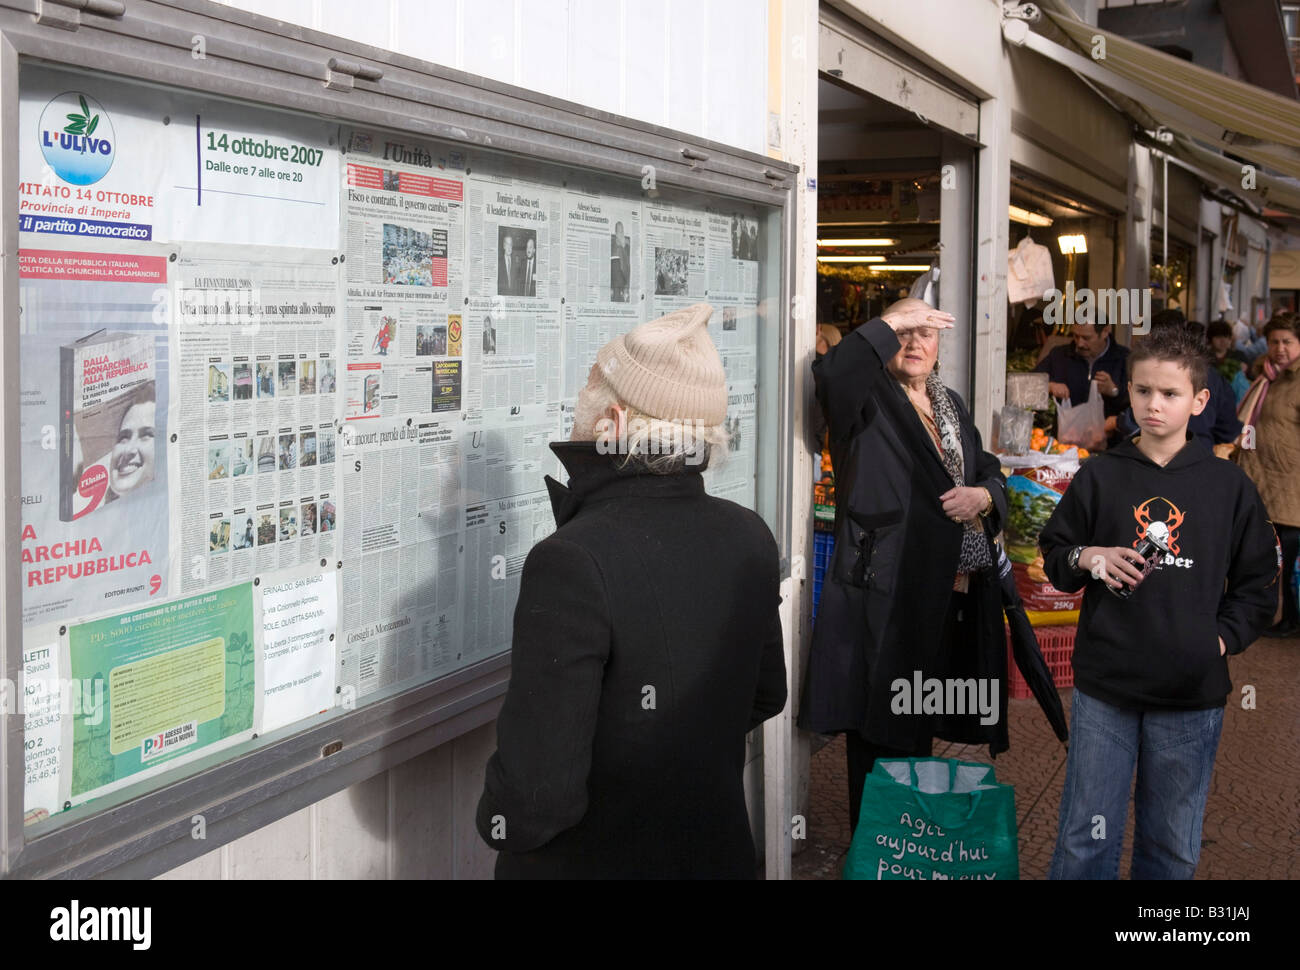 Man reading the leftist newspaper L Unita on display outside the covered market in Ventimiglia - Stock Image